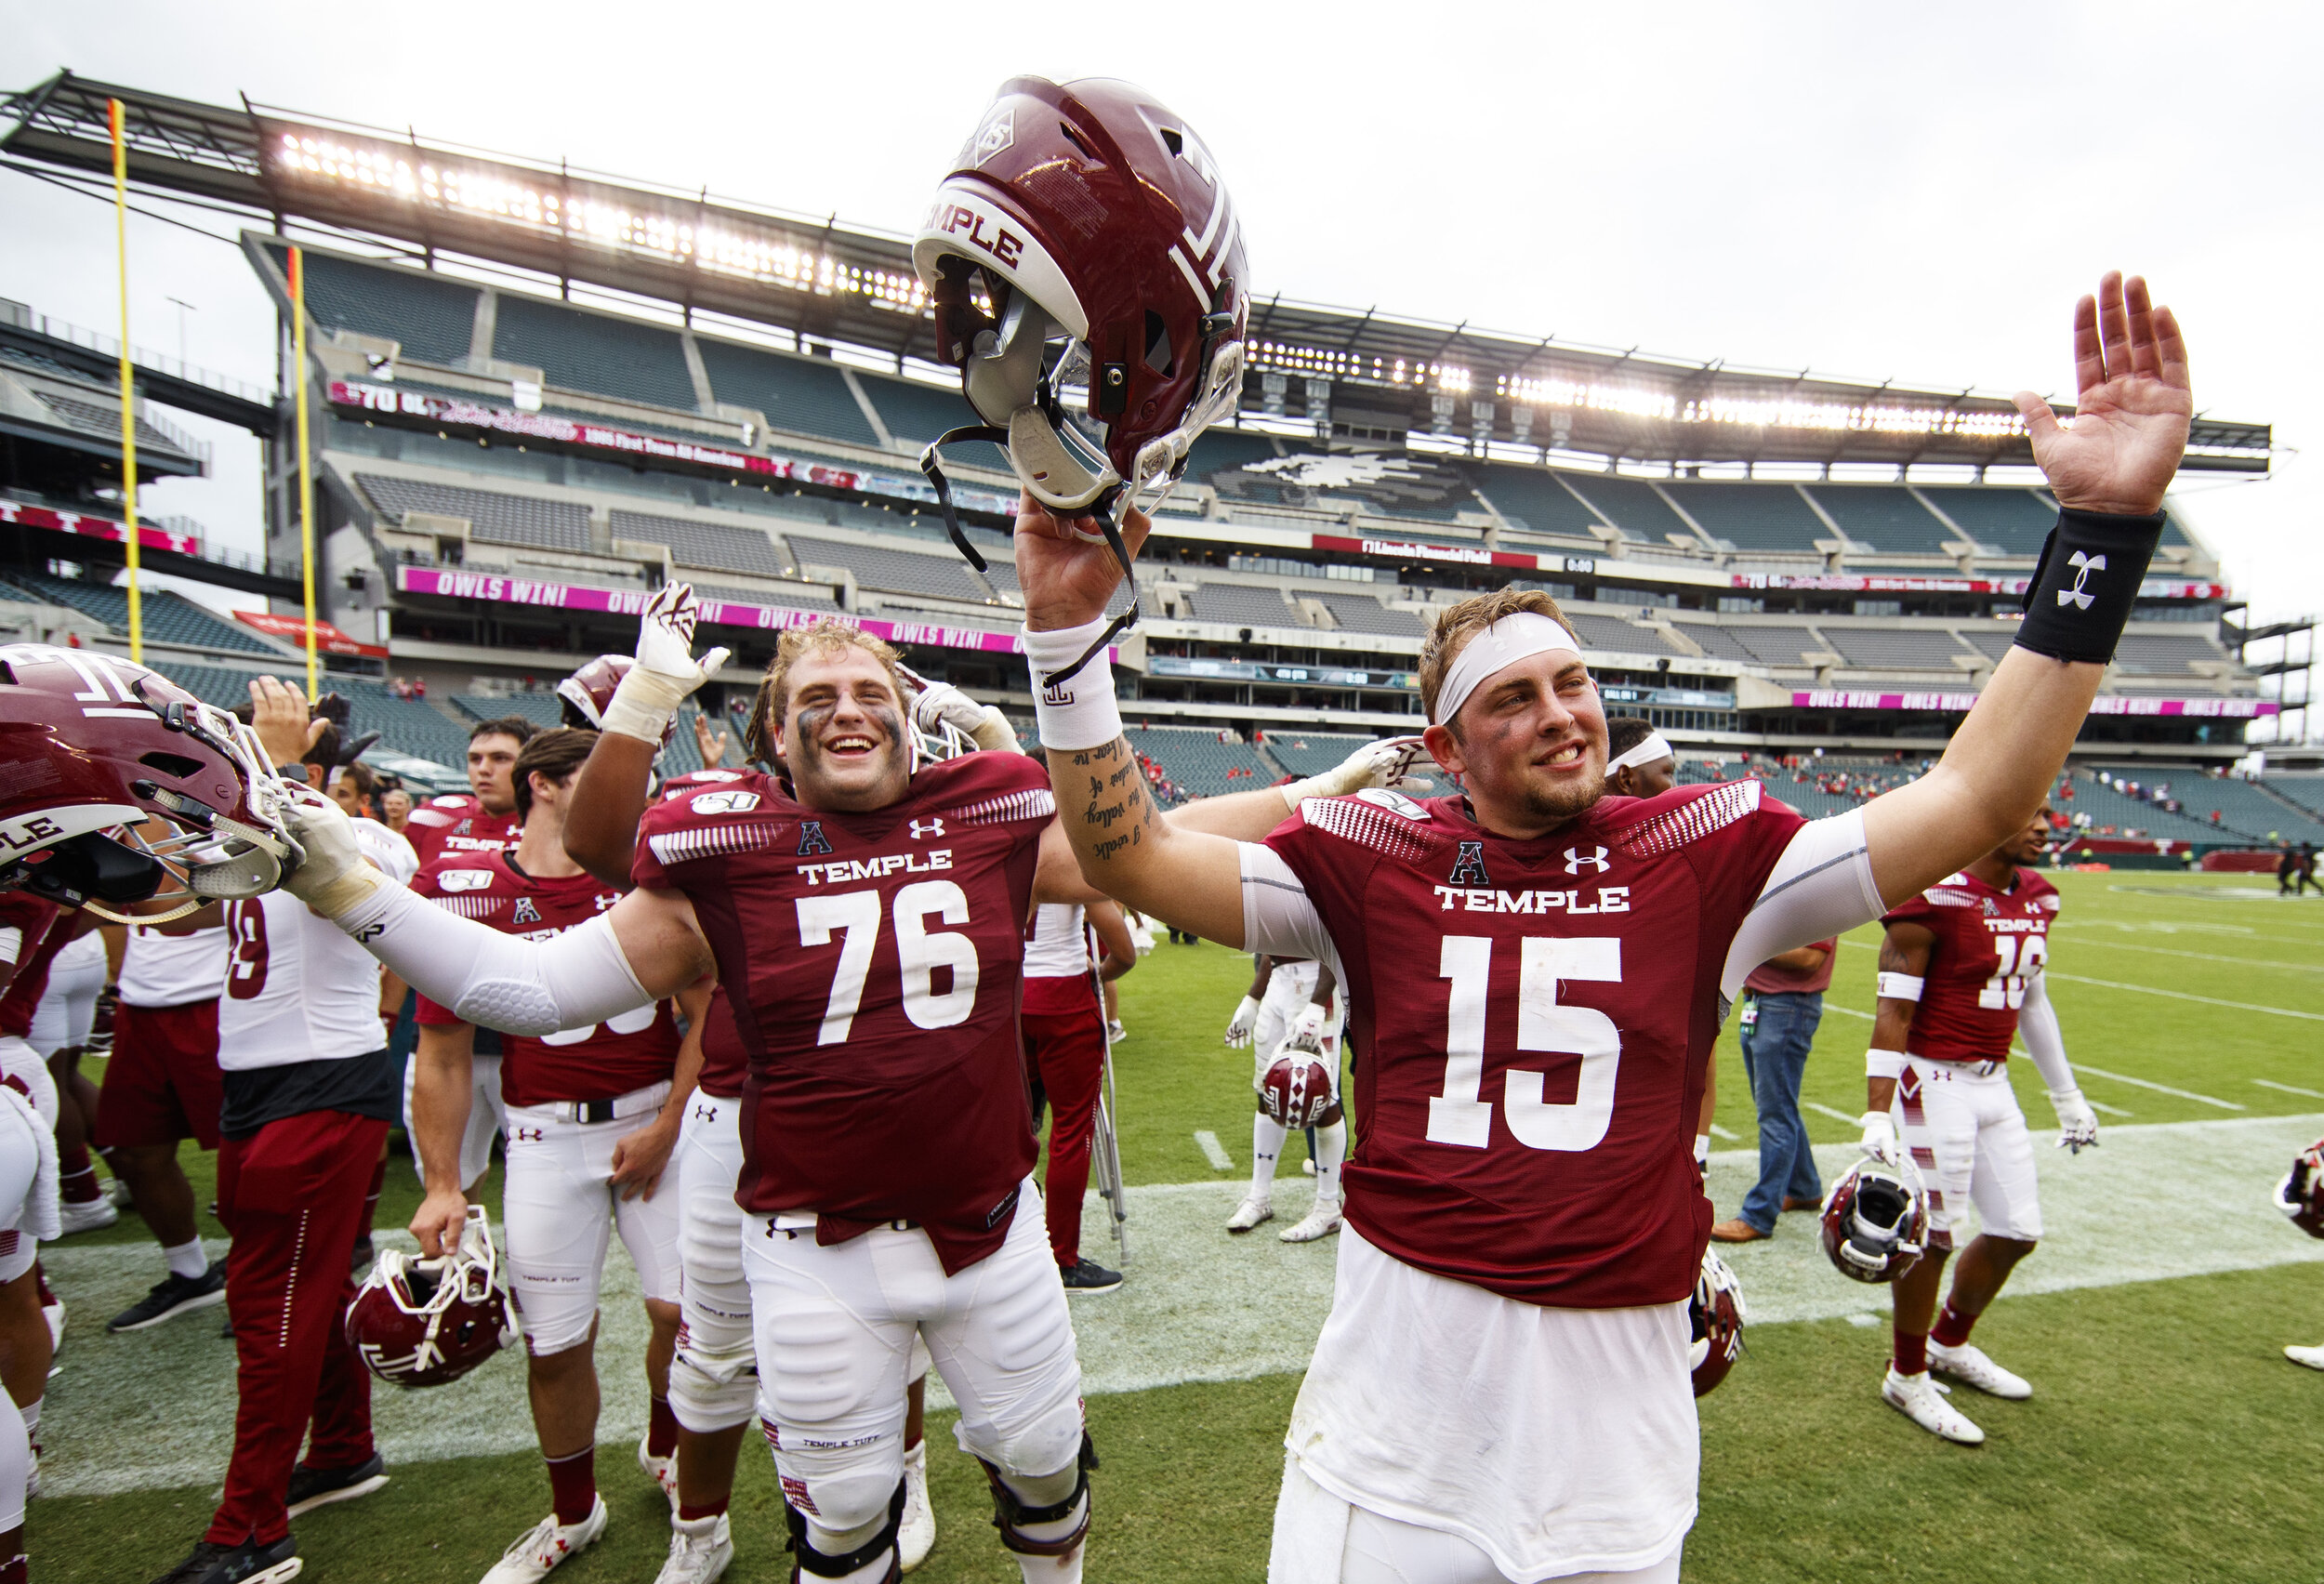 The Temple Owls pulled off a big upset victory over No. 21 Maryland thanks in no small part to their strong effort on the defensive end.  Photo from The Associated Press.